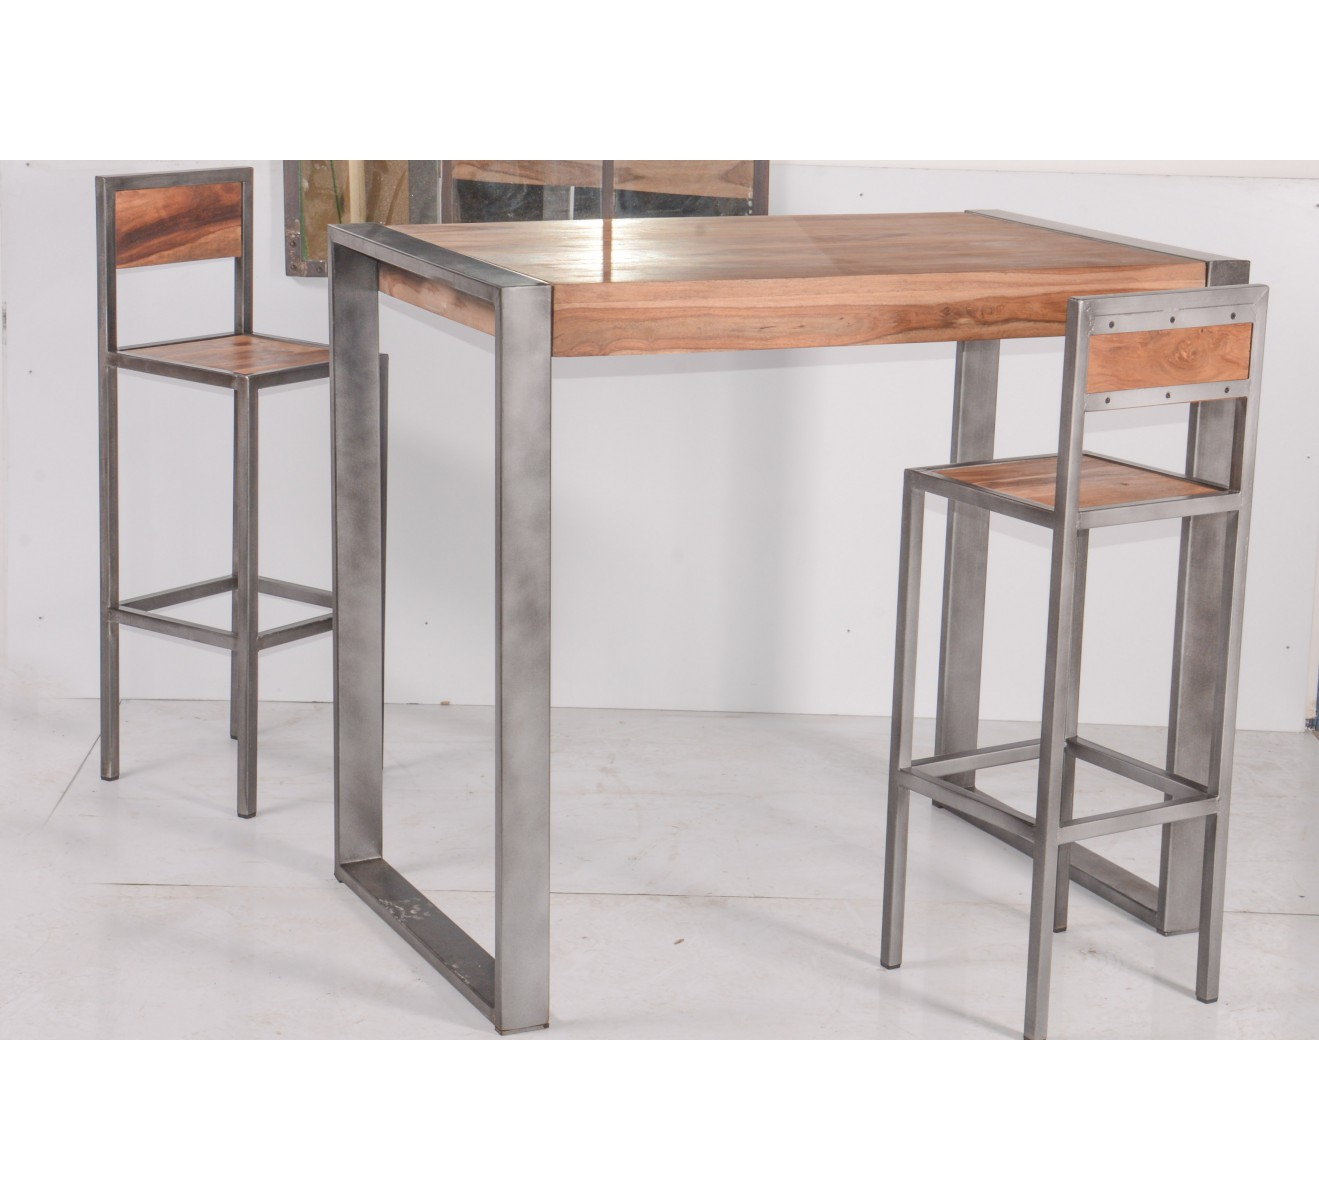 tabouret de bar industriel en m tal et bois 39 industry 6748. Black Bedroom Furniture Sets. Home Design Ideas